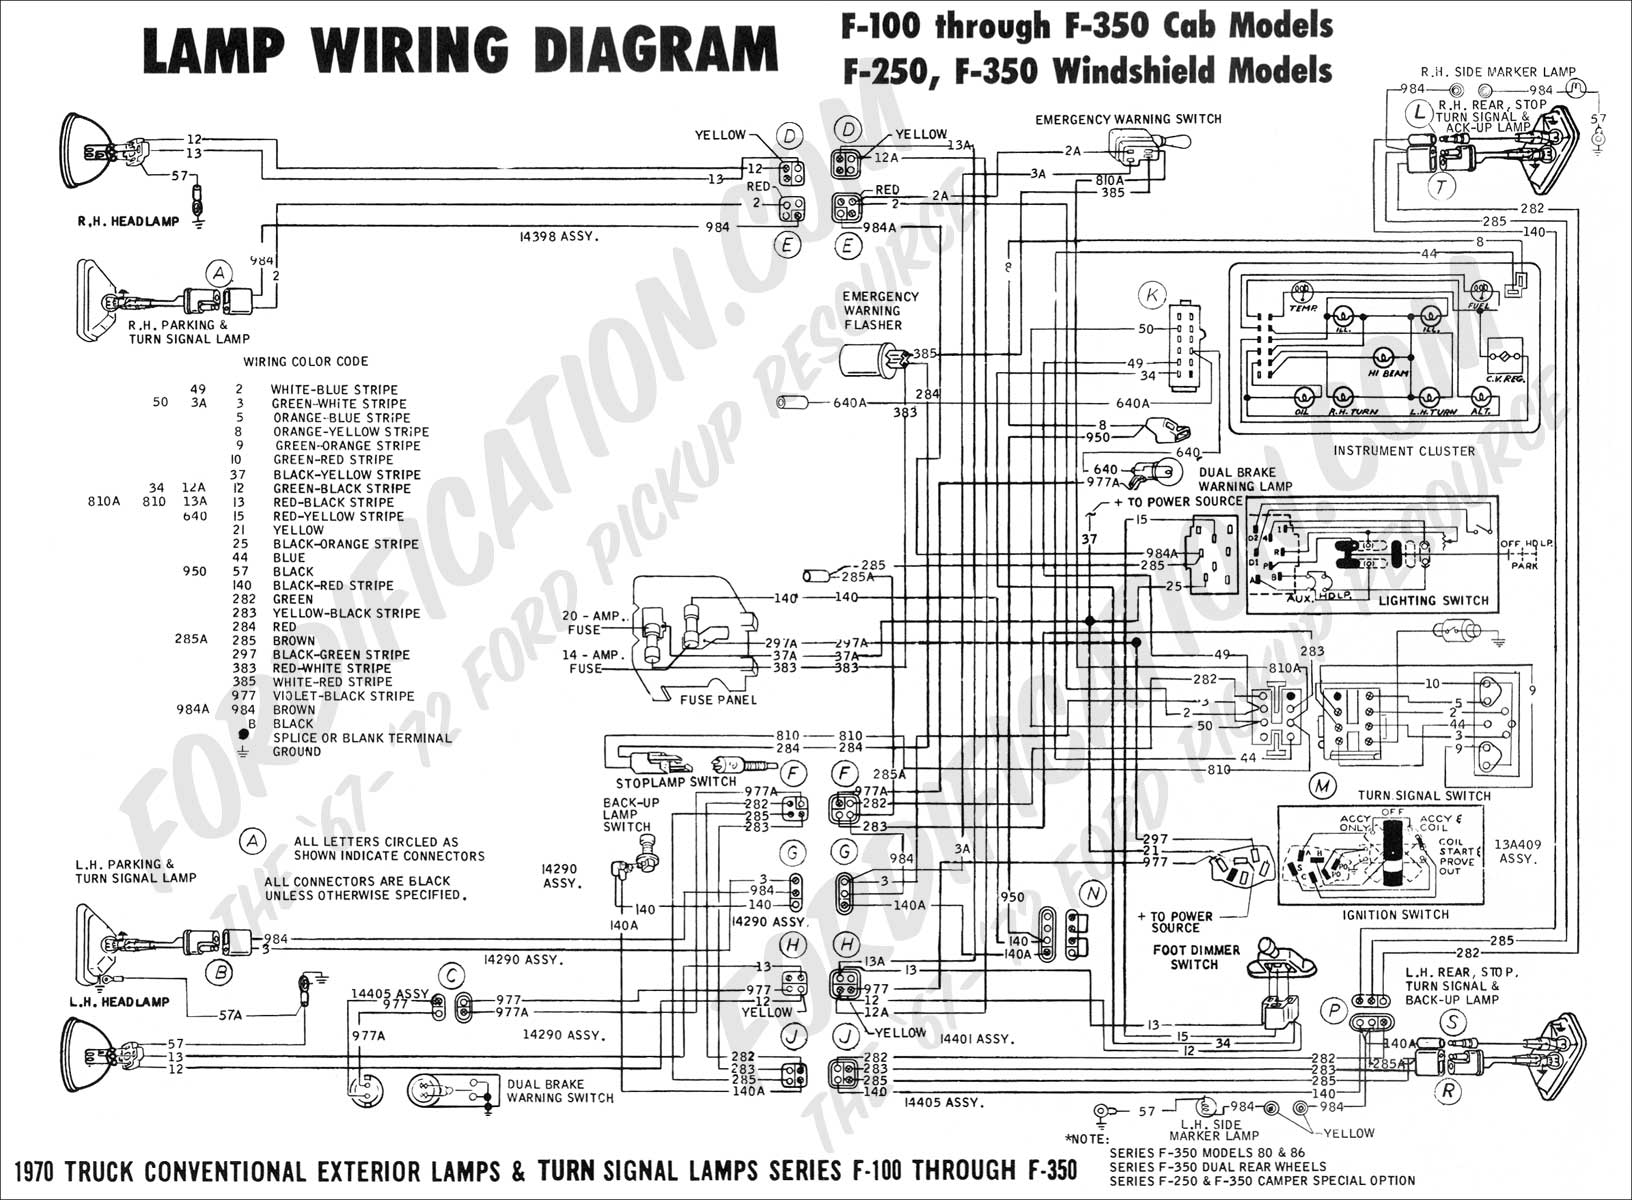 1994 mustang wiring diagram 86 f150 lights wiring diagram 86 wiring diagrams 1996 ford mustang gt wiring